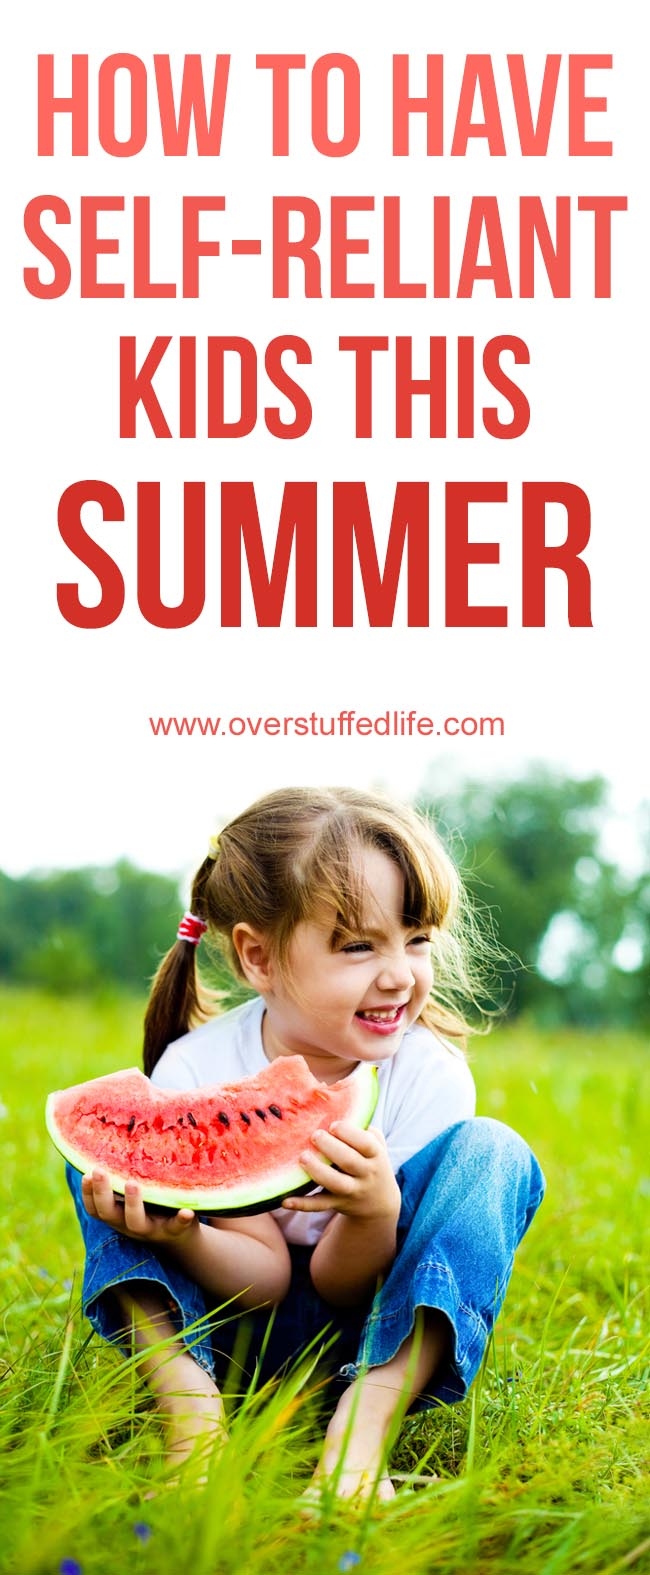 How to Have Self-Reliant Kids This Summer